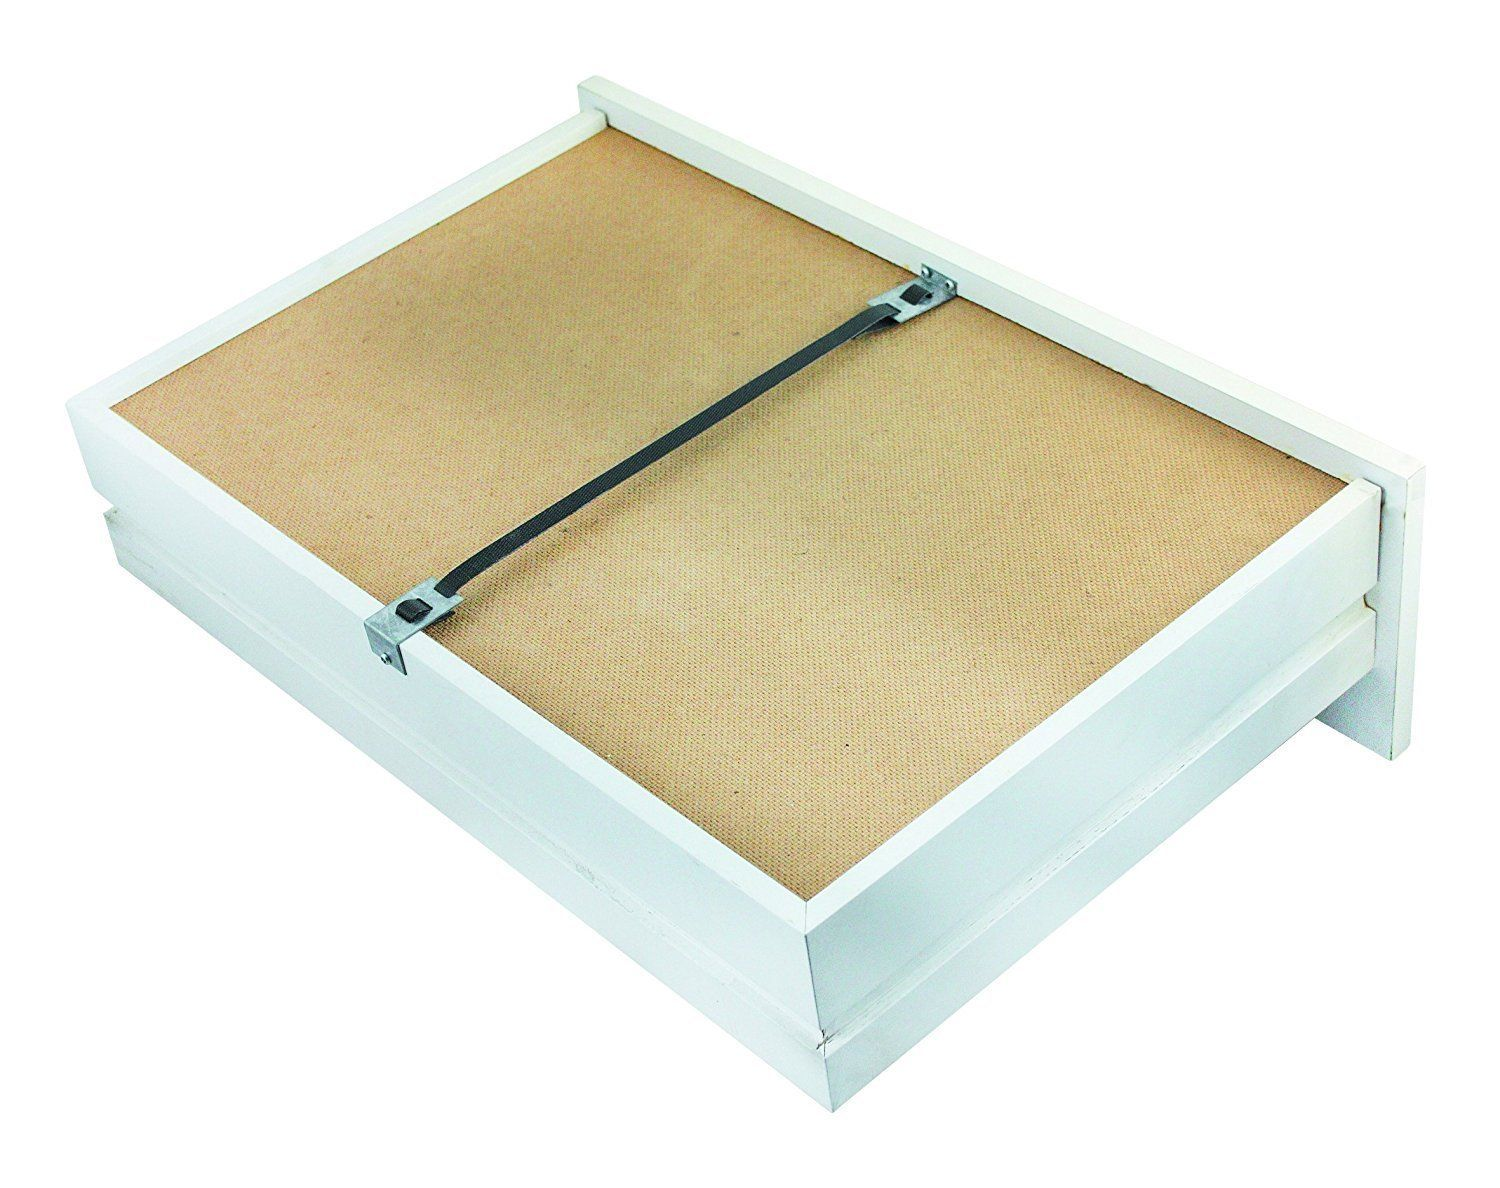 Fix A Drawer Kit X4 Pack Repair Broken Drawers Quickly Easily Reinforce Strengthen Drawers Mend Broken Drawers With Images Ikea Hemnes Drawers Diy Materials